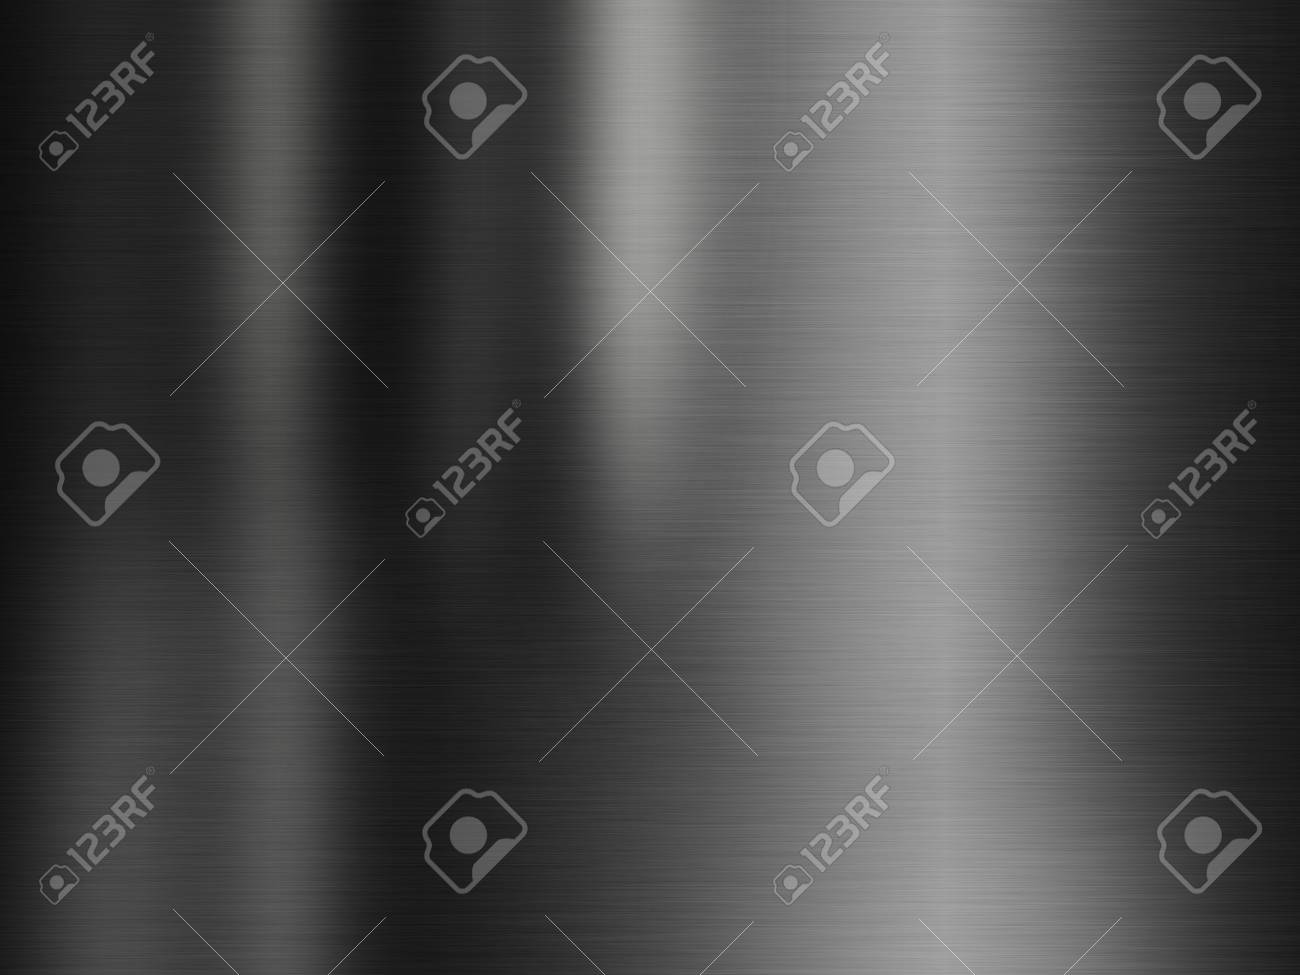 Stainless steel texture or metal texture background Banque d'images - 75076758